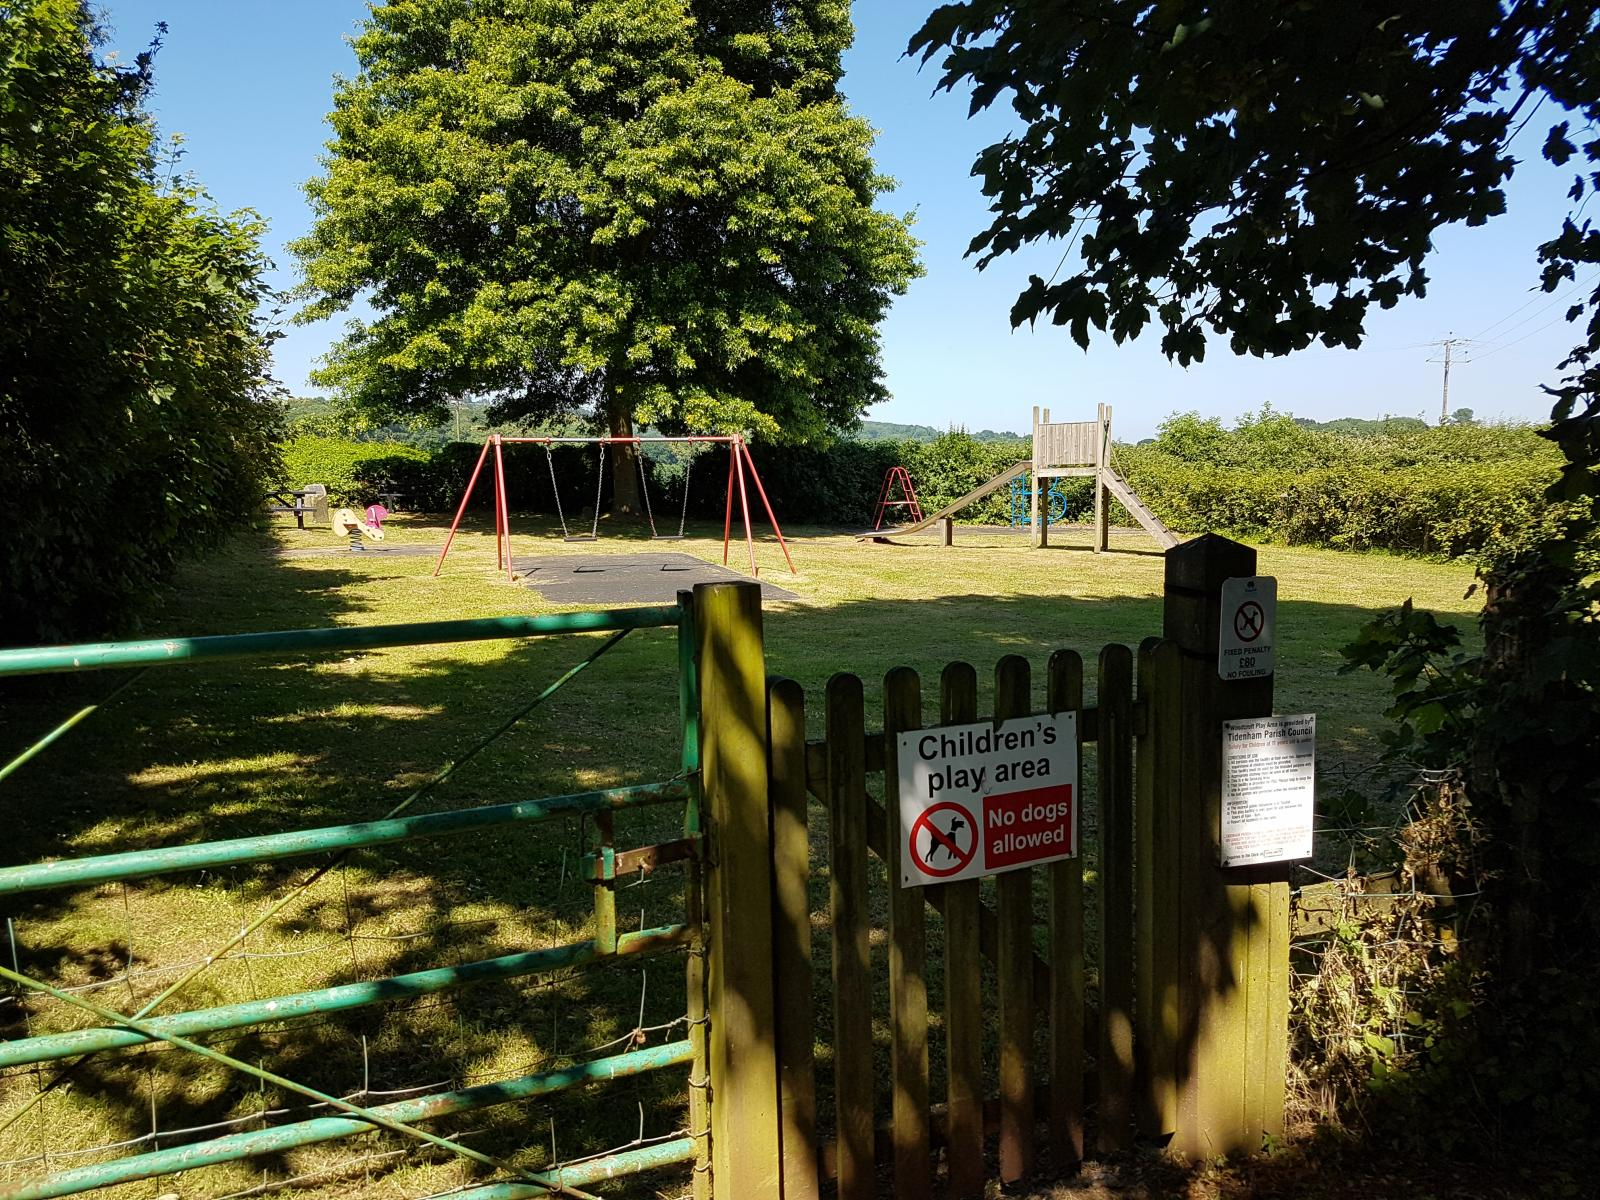 Woodcroft Lane Play Area